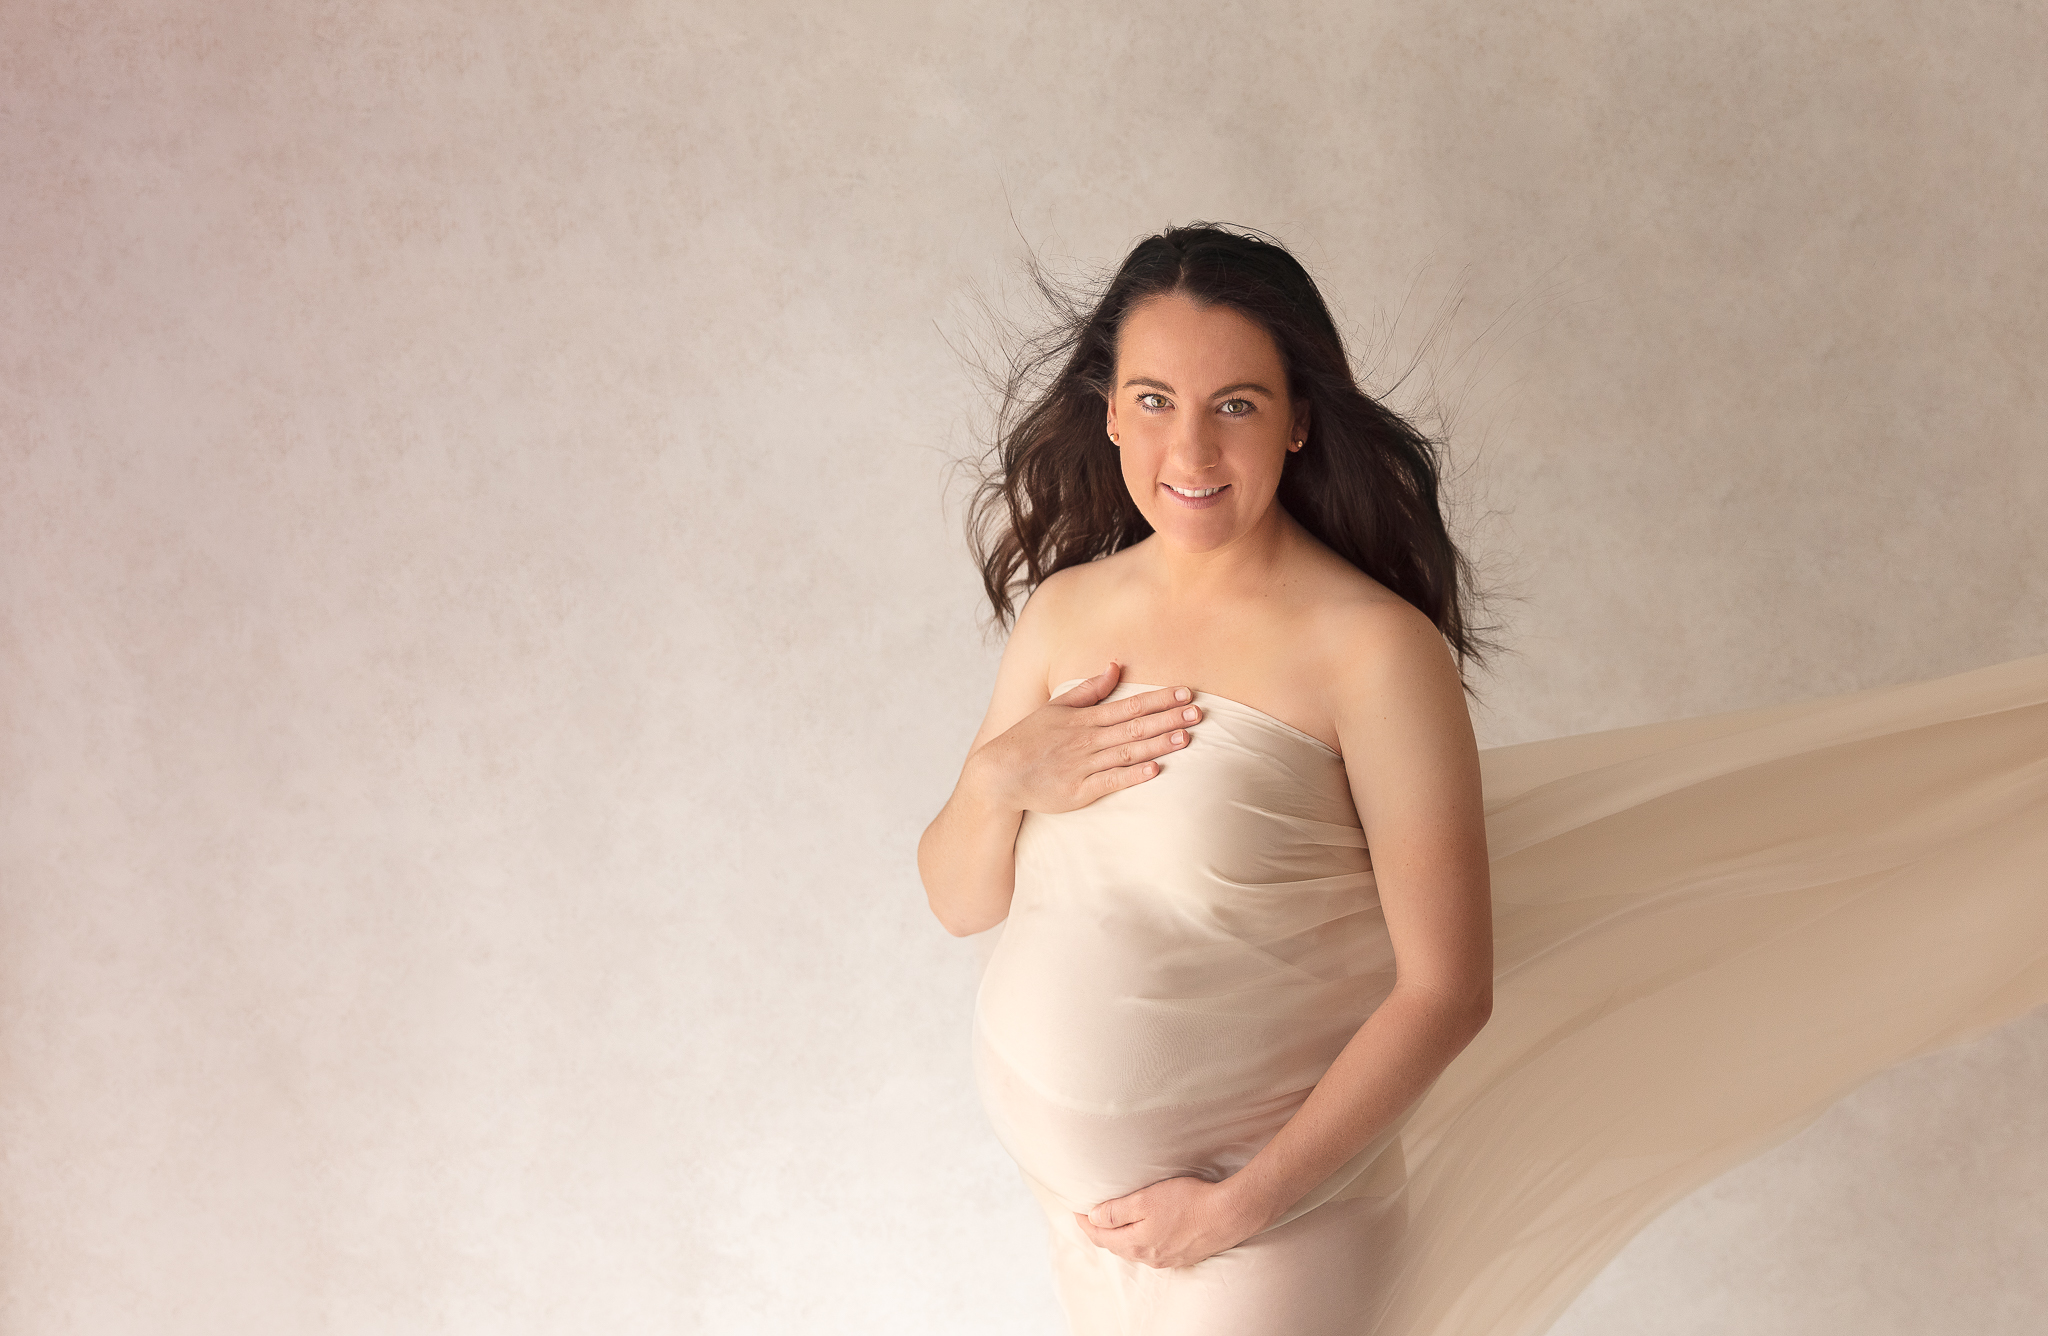 maternity-woman-pregnant-beautiful-jcimagery-photo-silk